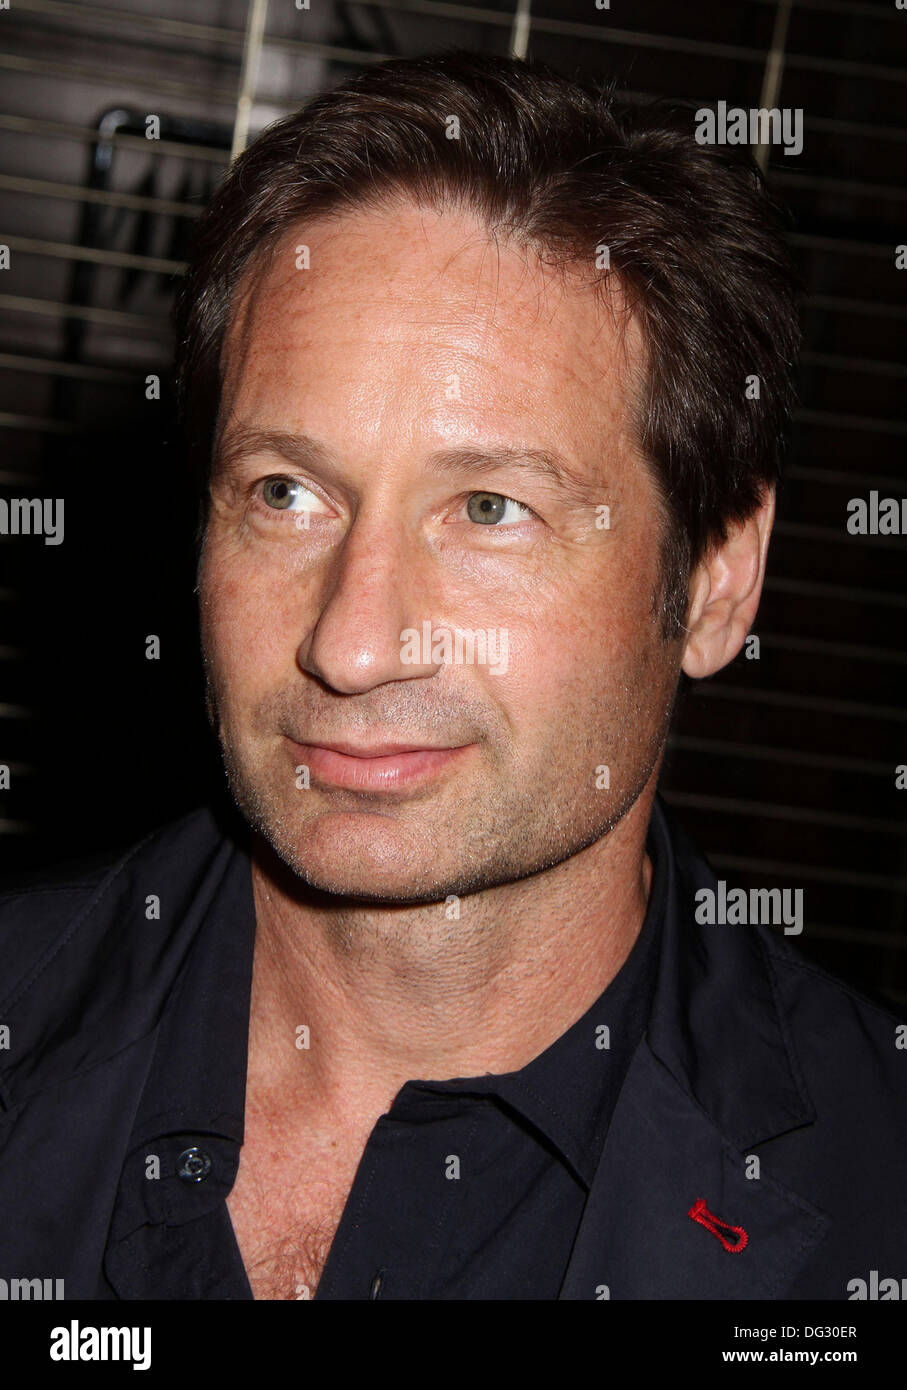 New York, USA. 12th Oct, 2013. Actor DAVID DUCHOVY attends 'The Truth is Here' X Files Panel Discussion held at the Paley Center. © Nancy Kaszerman/ZUMAPRESS.com/Alamy Live News - Stock Image